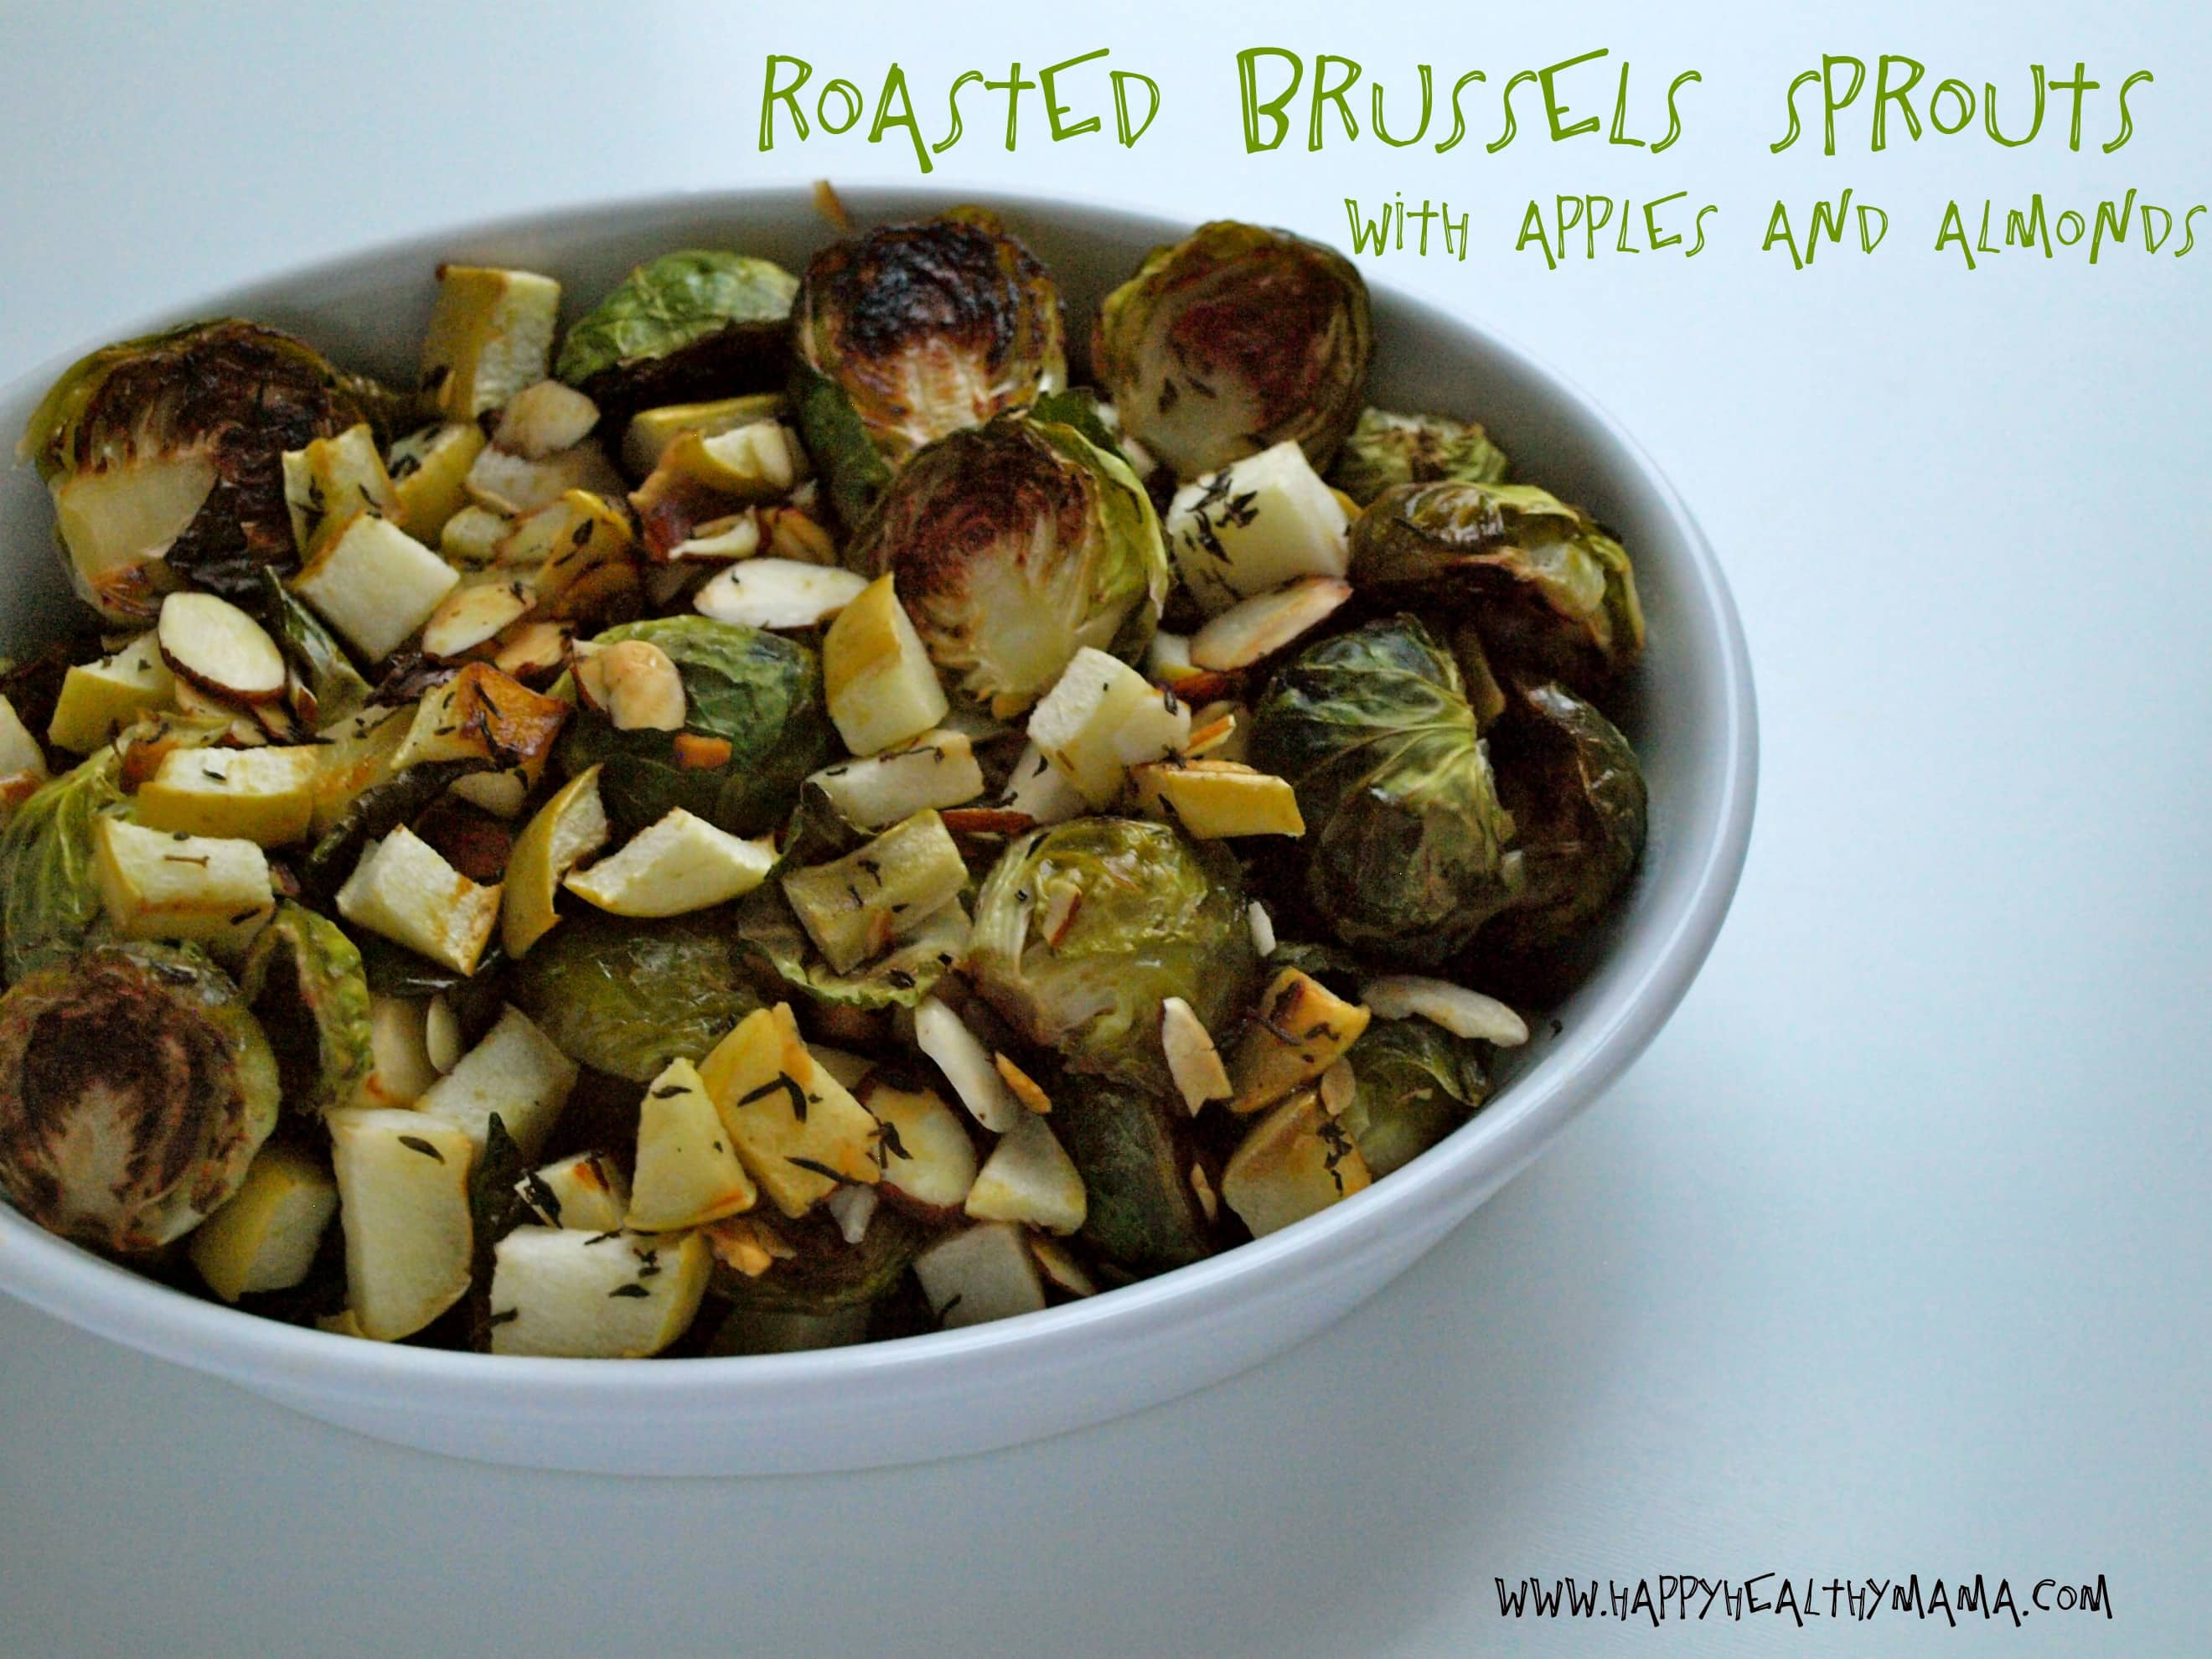 Roasted brussels sprouts with apples and almonds